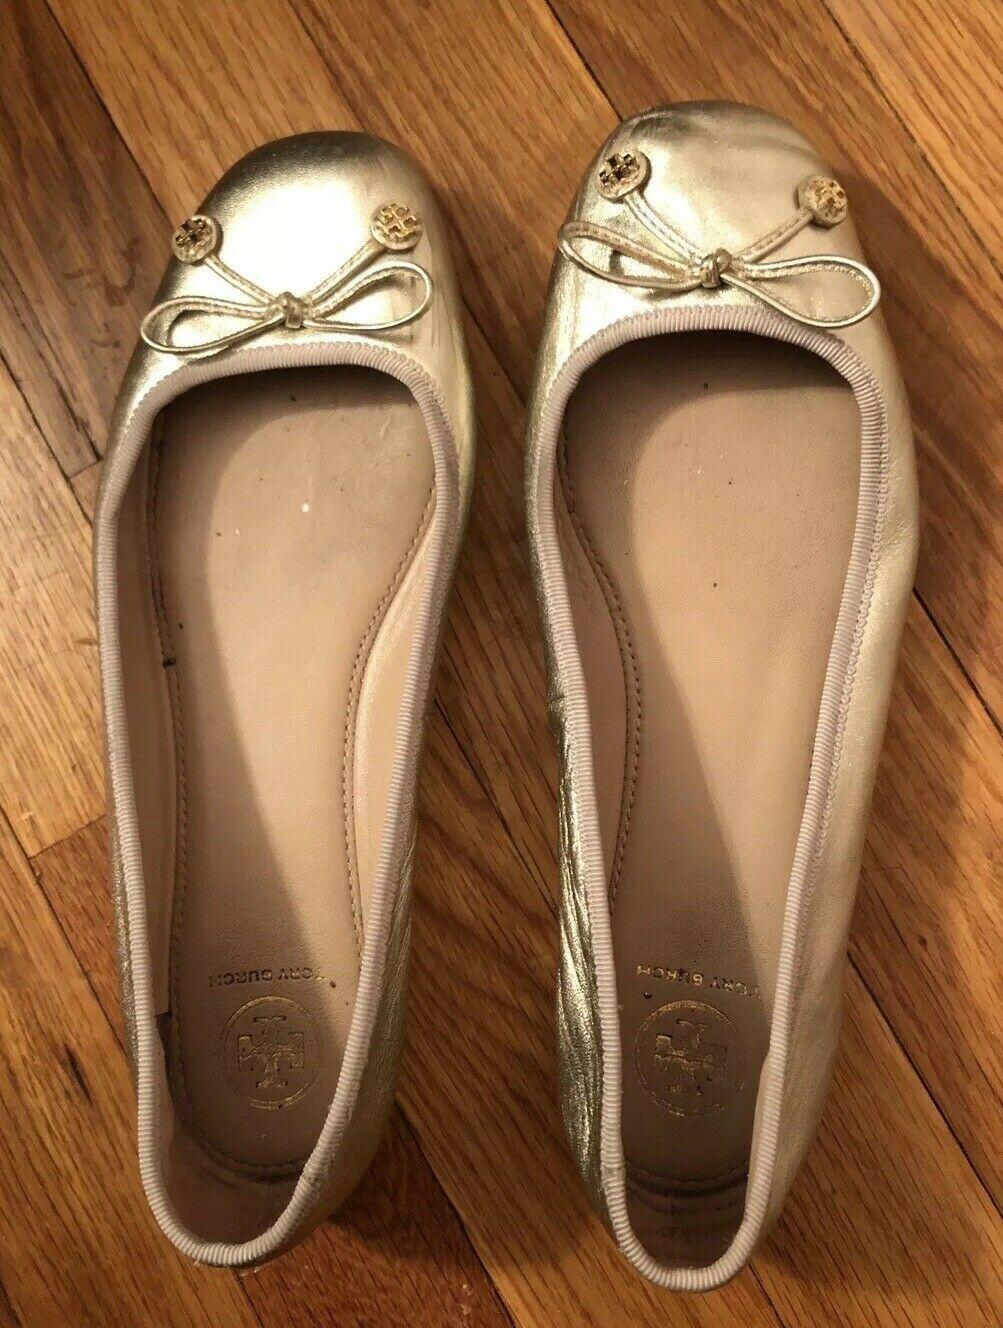 Tory Burch Laila Driver Leather Ballet Flats Women shoes Size 8.5 gold Preowned